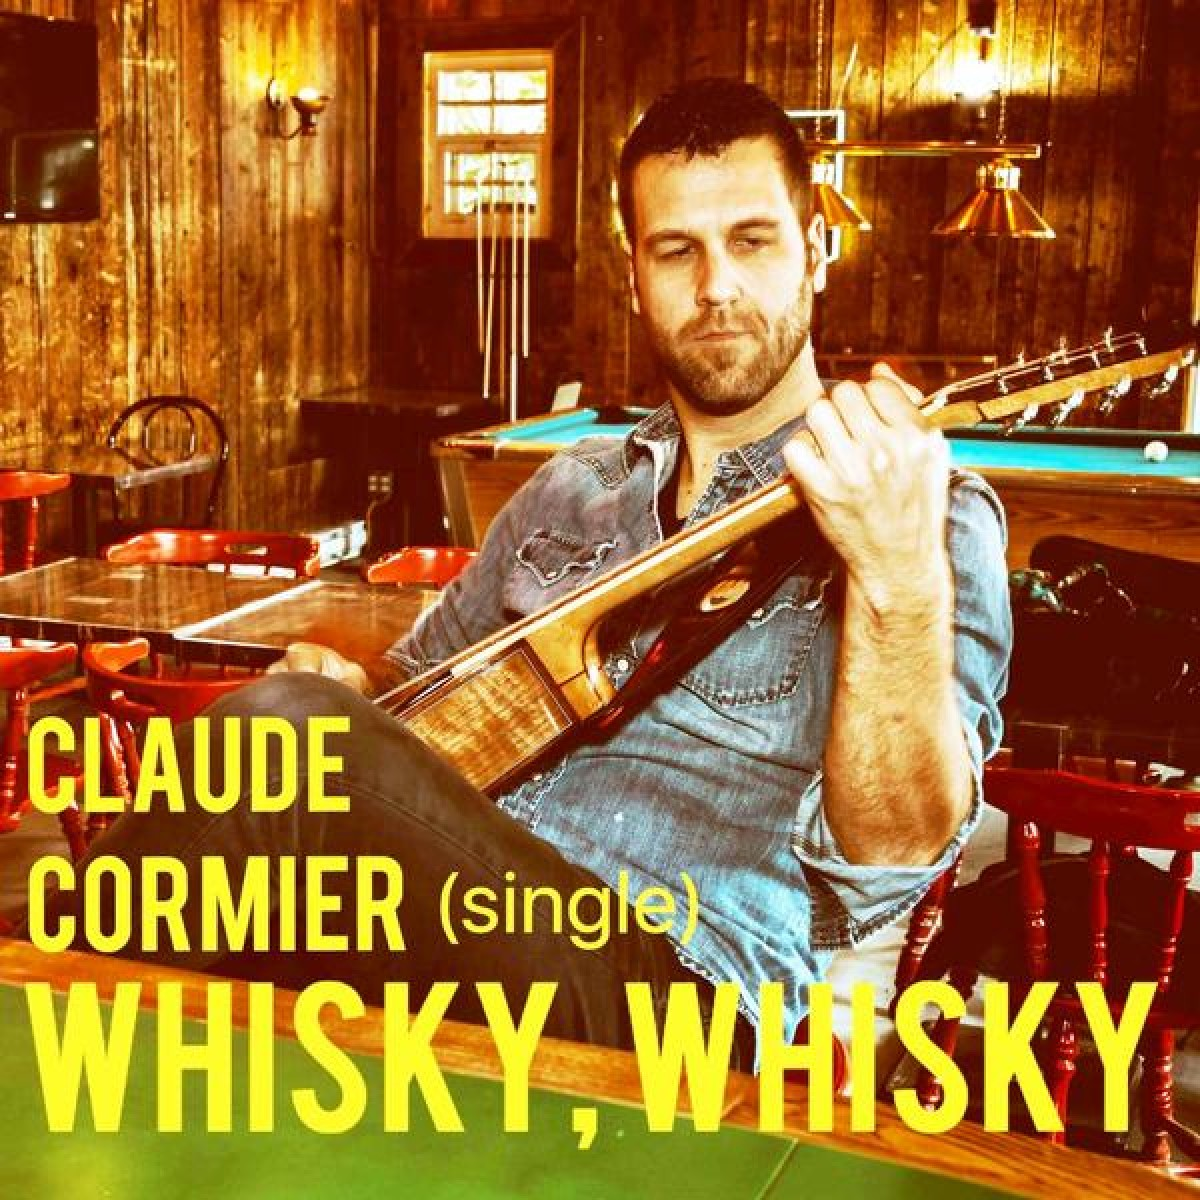 Claude Cormier - Whisky, whisky